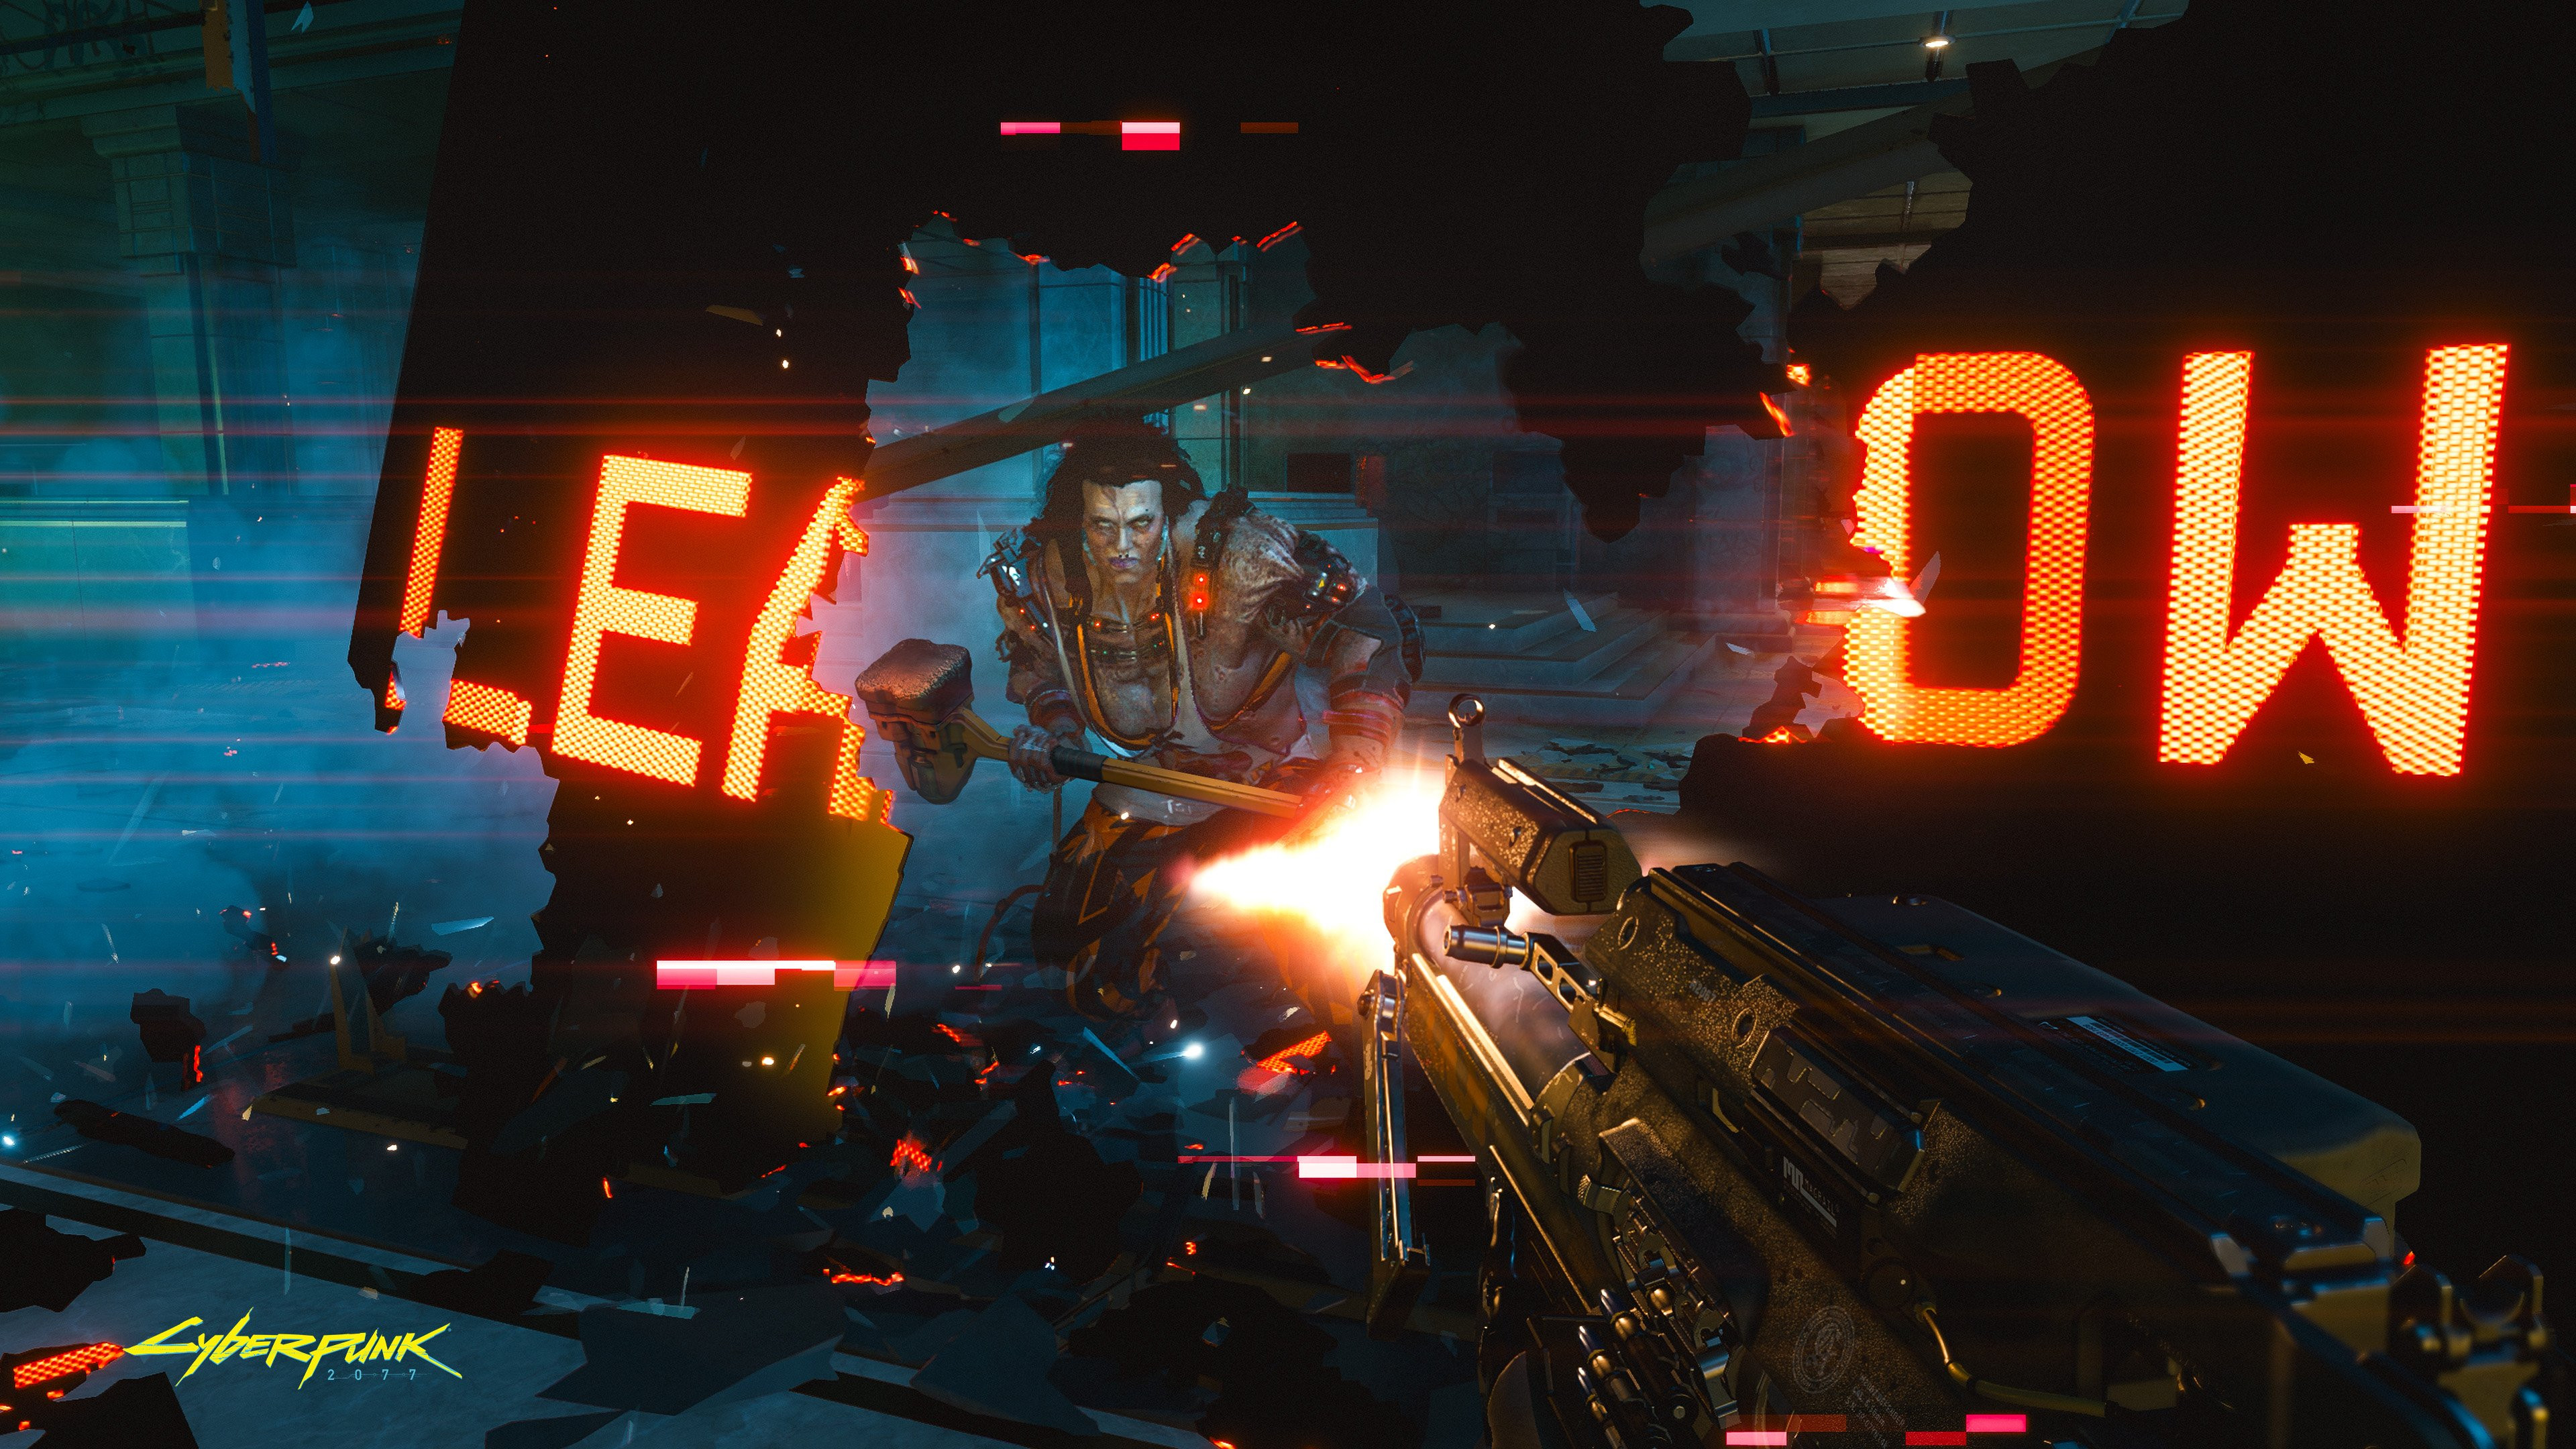 According To The Esrb Rating Cyberpunk 2077 Players Can Customize Character Genitals